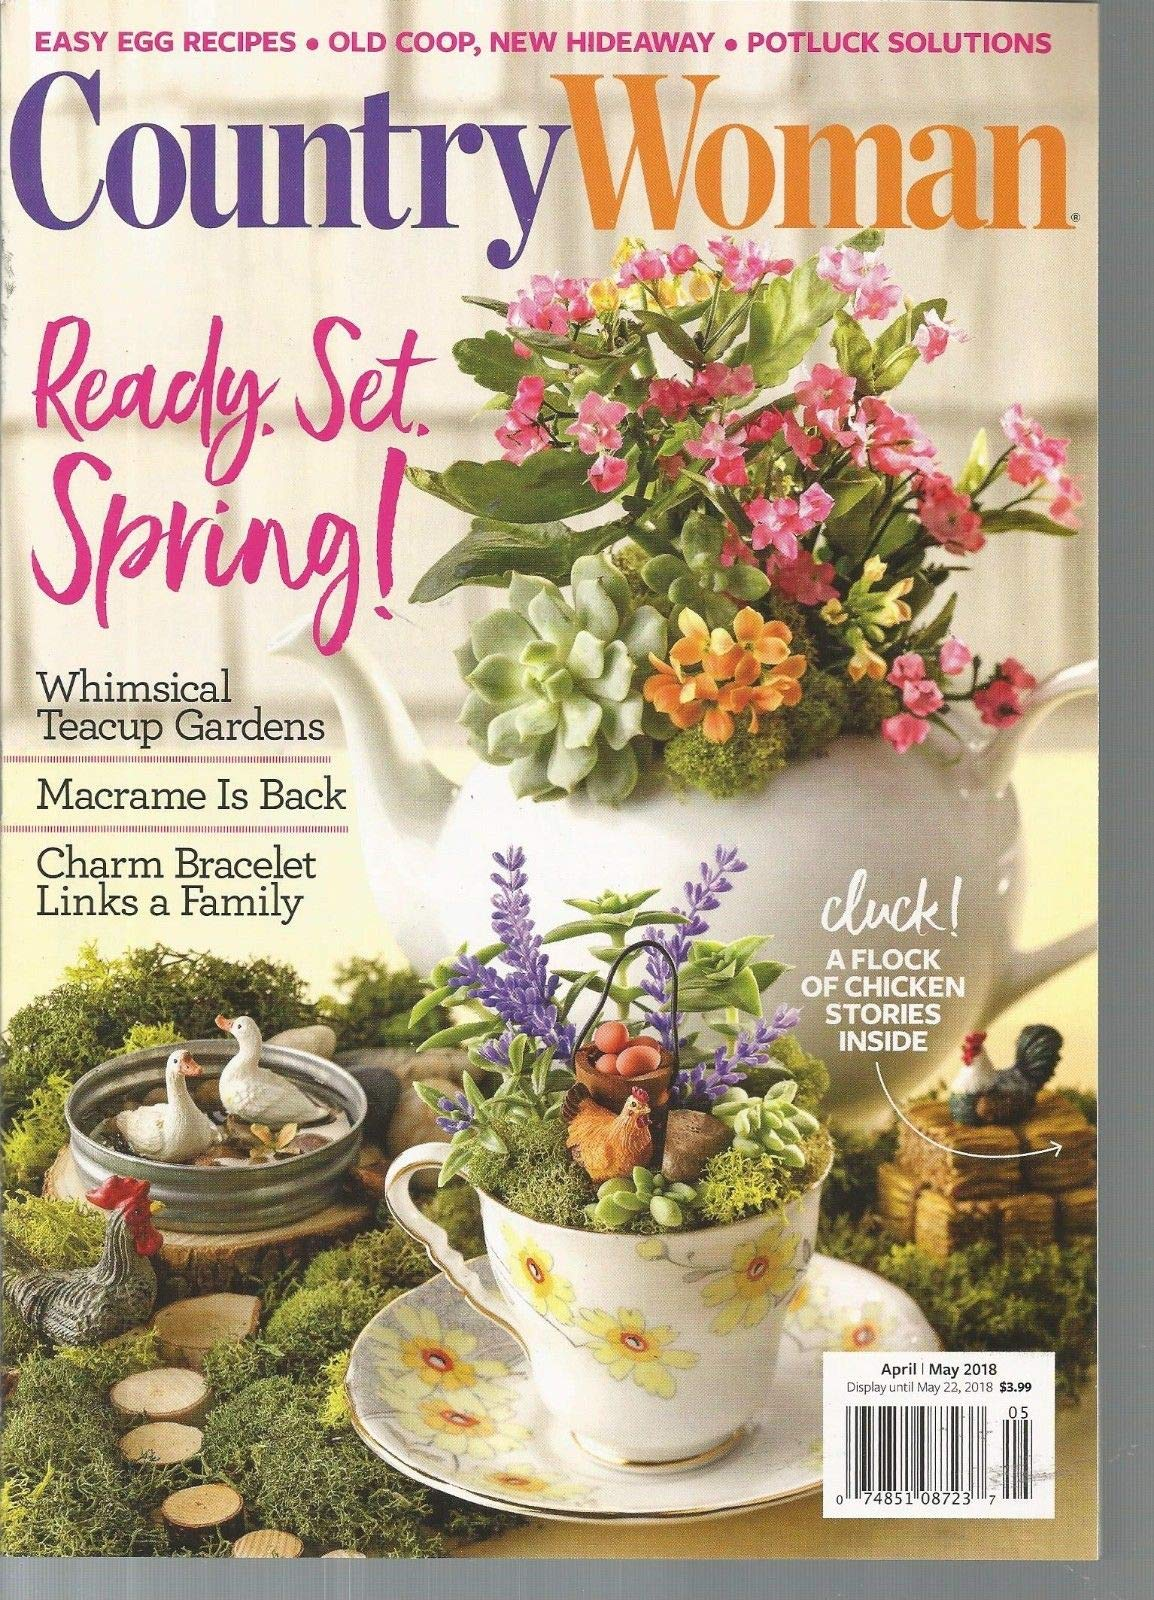 COUNTRY WOMAN MAGAZINE, APRIL/MAY 2018 ~